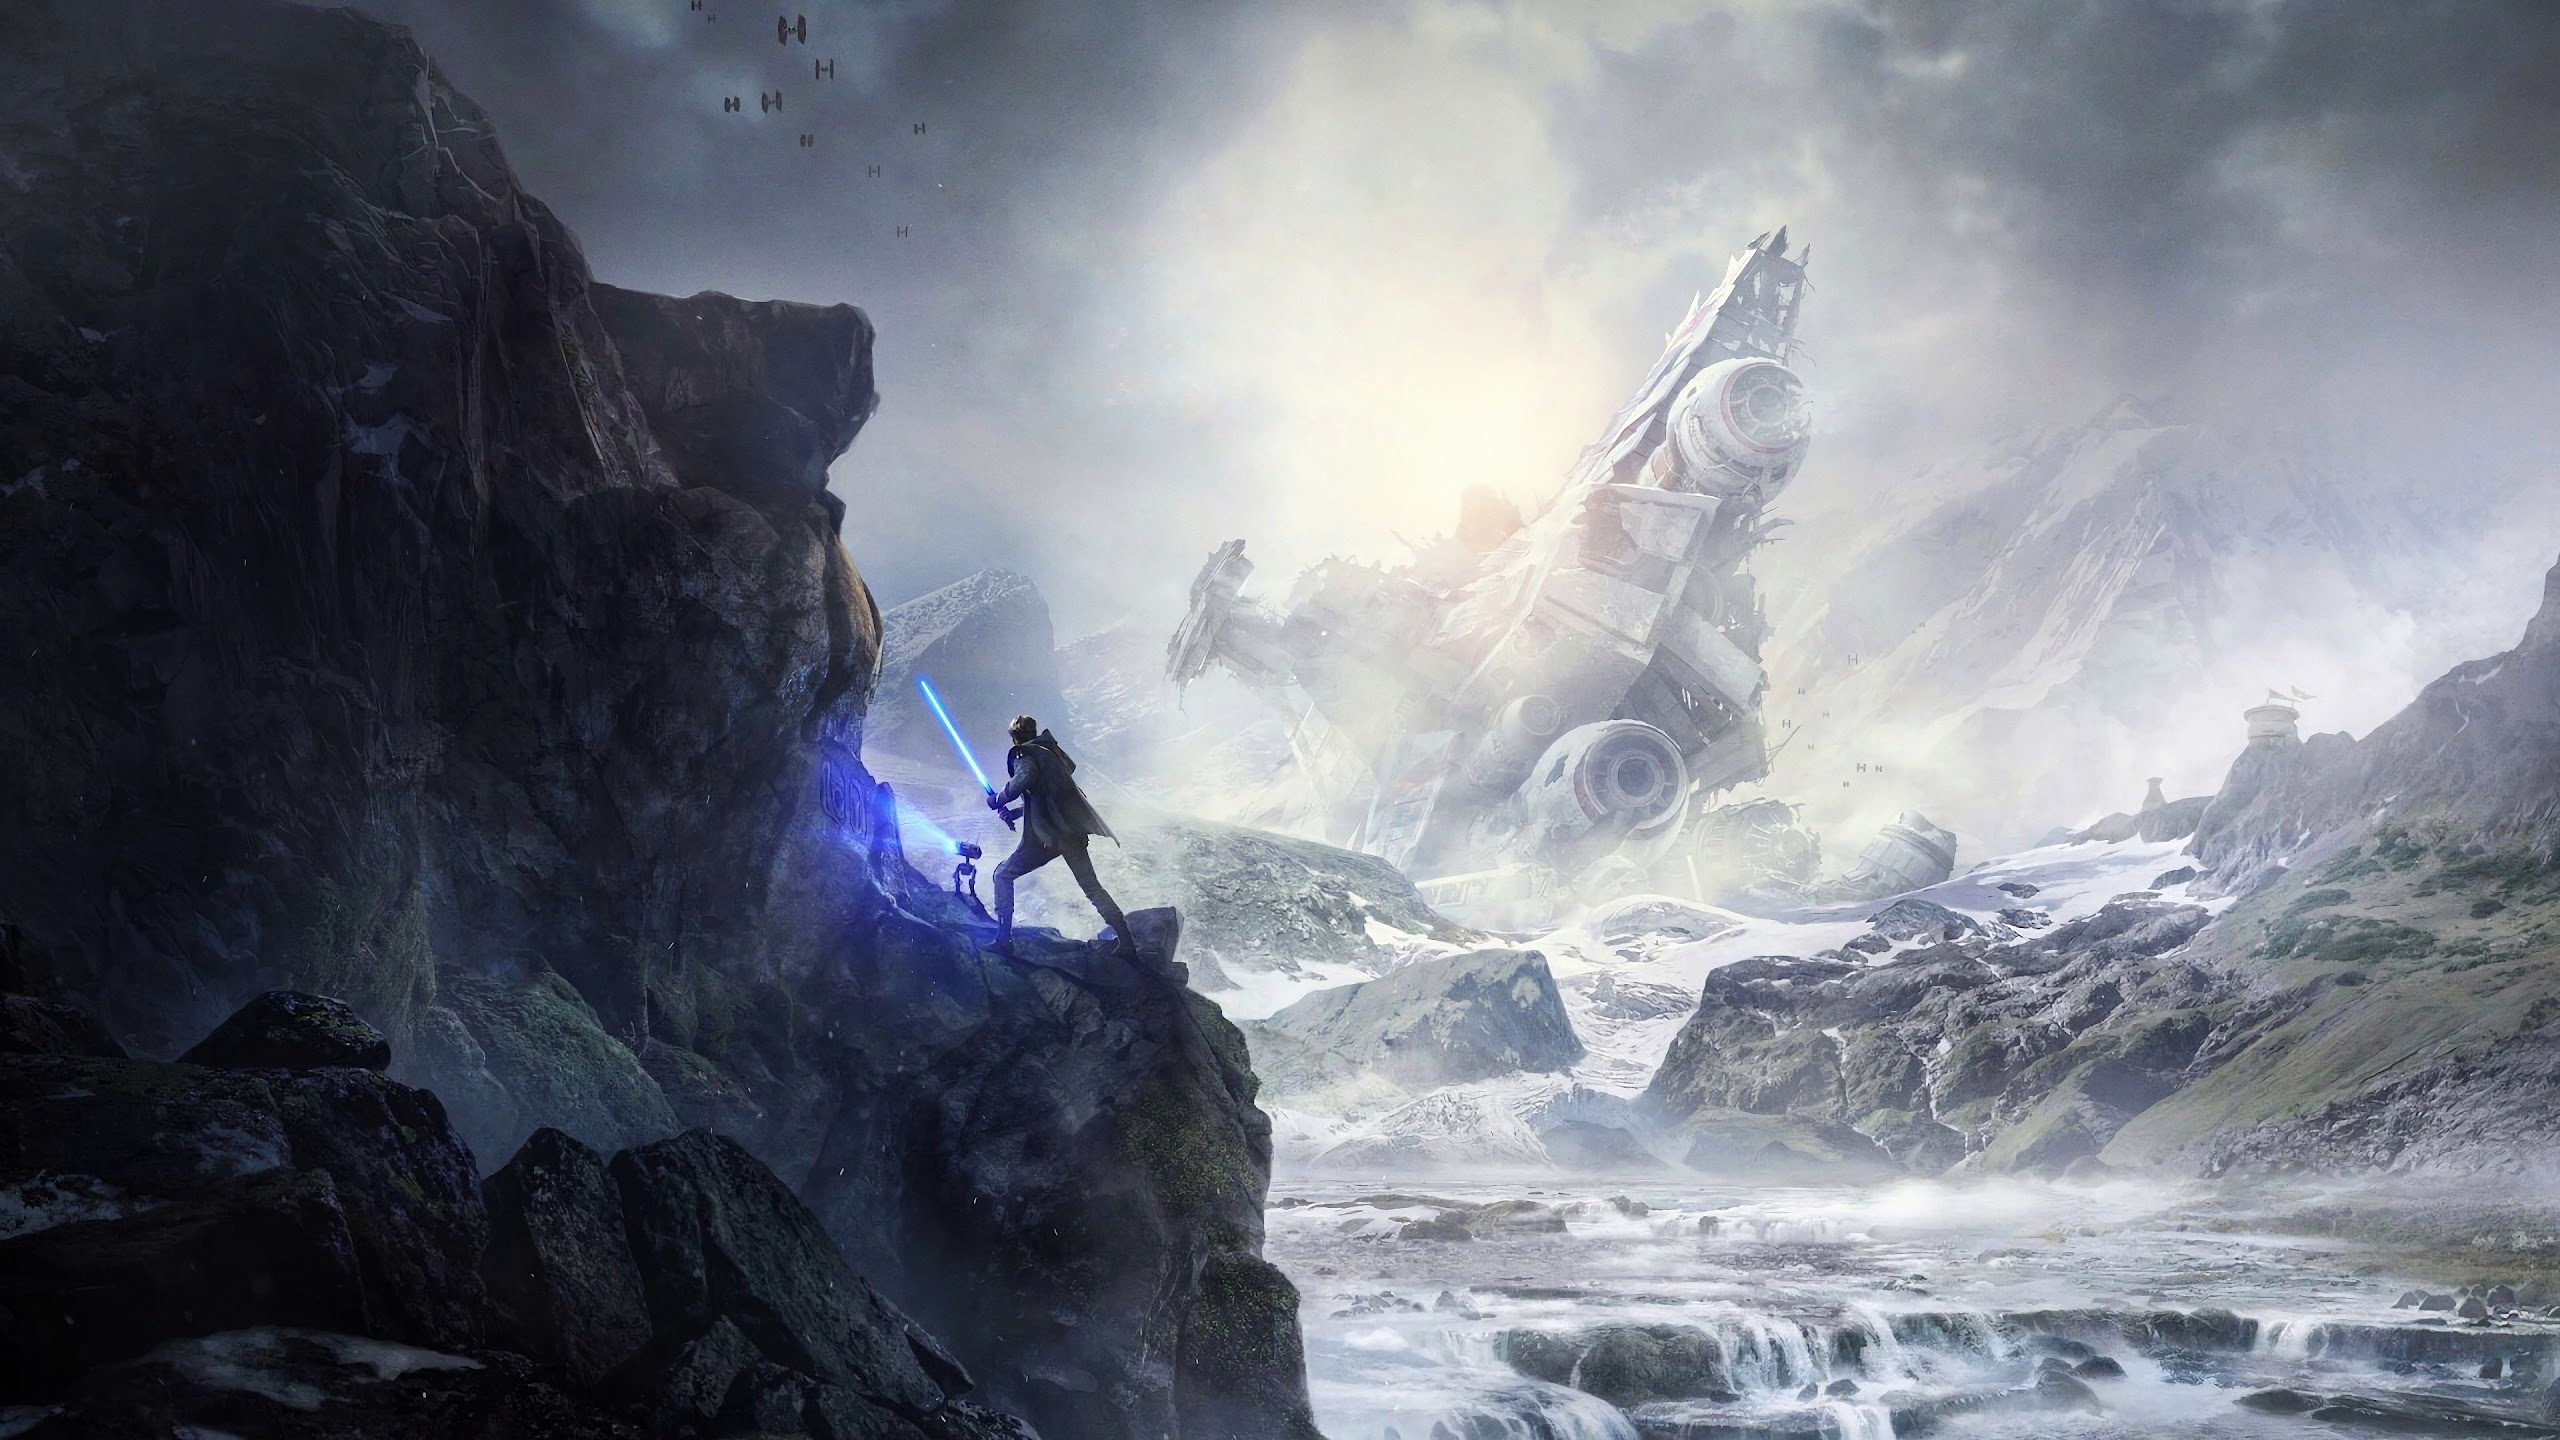 Star Wars Jedi Fallen Order 4k Wallpaper 23